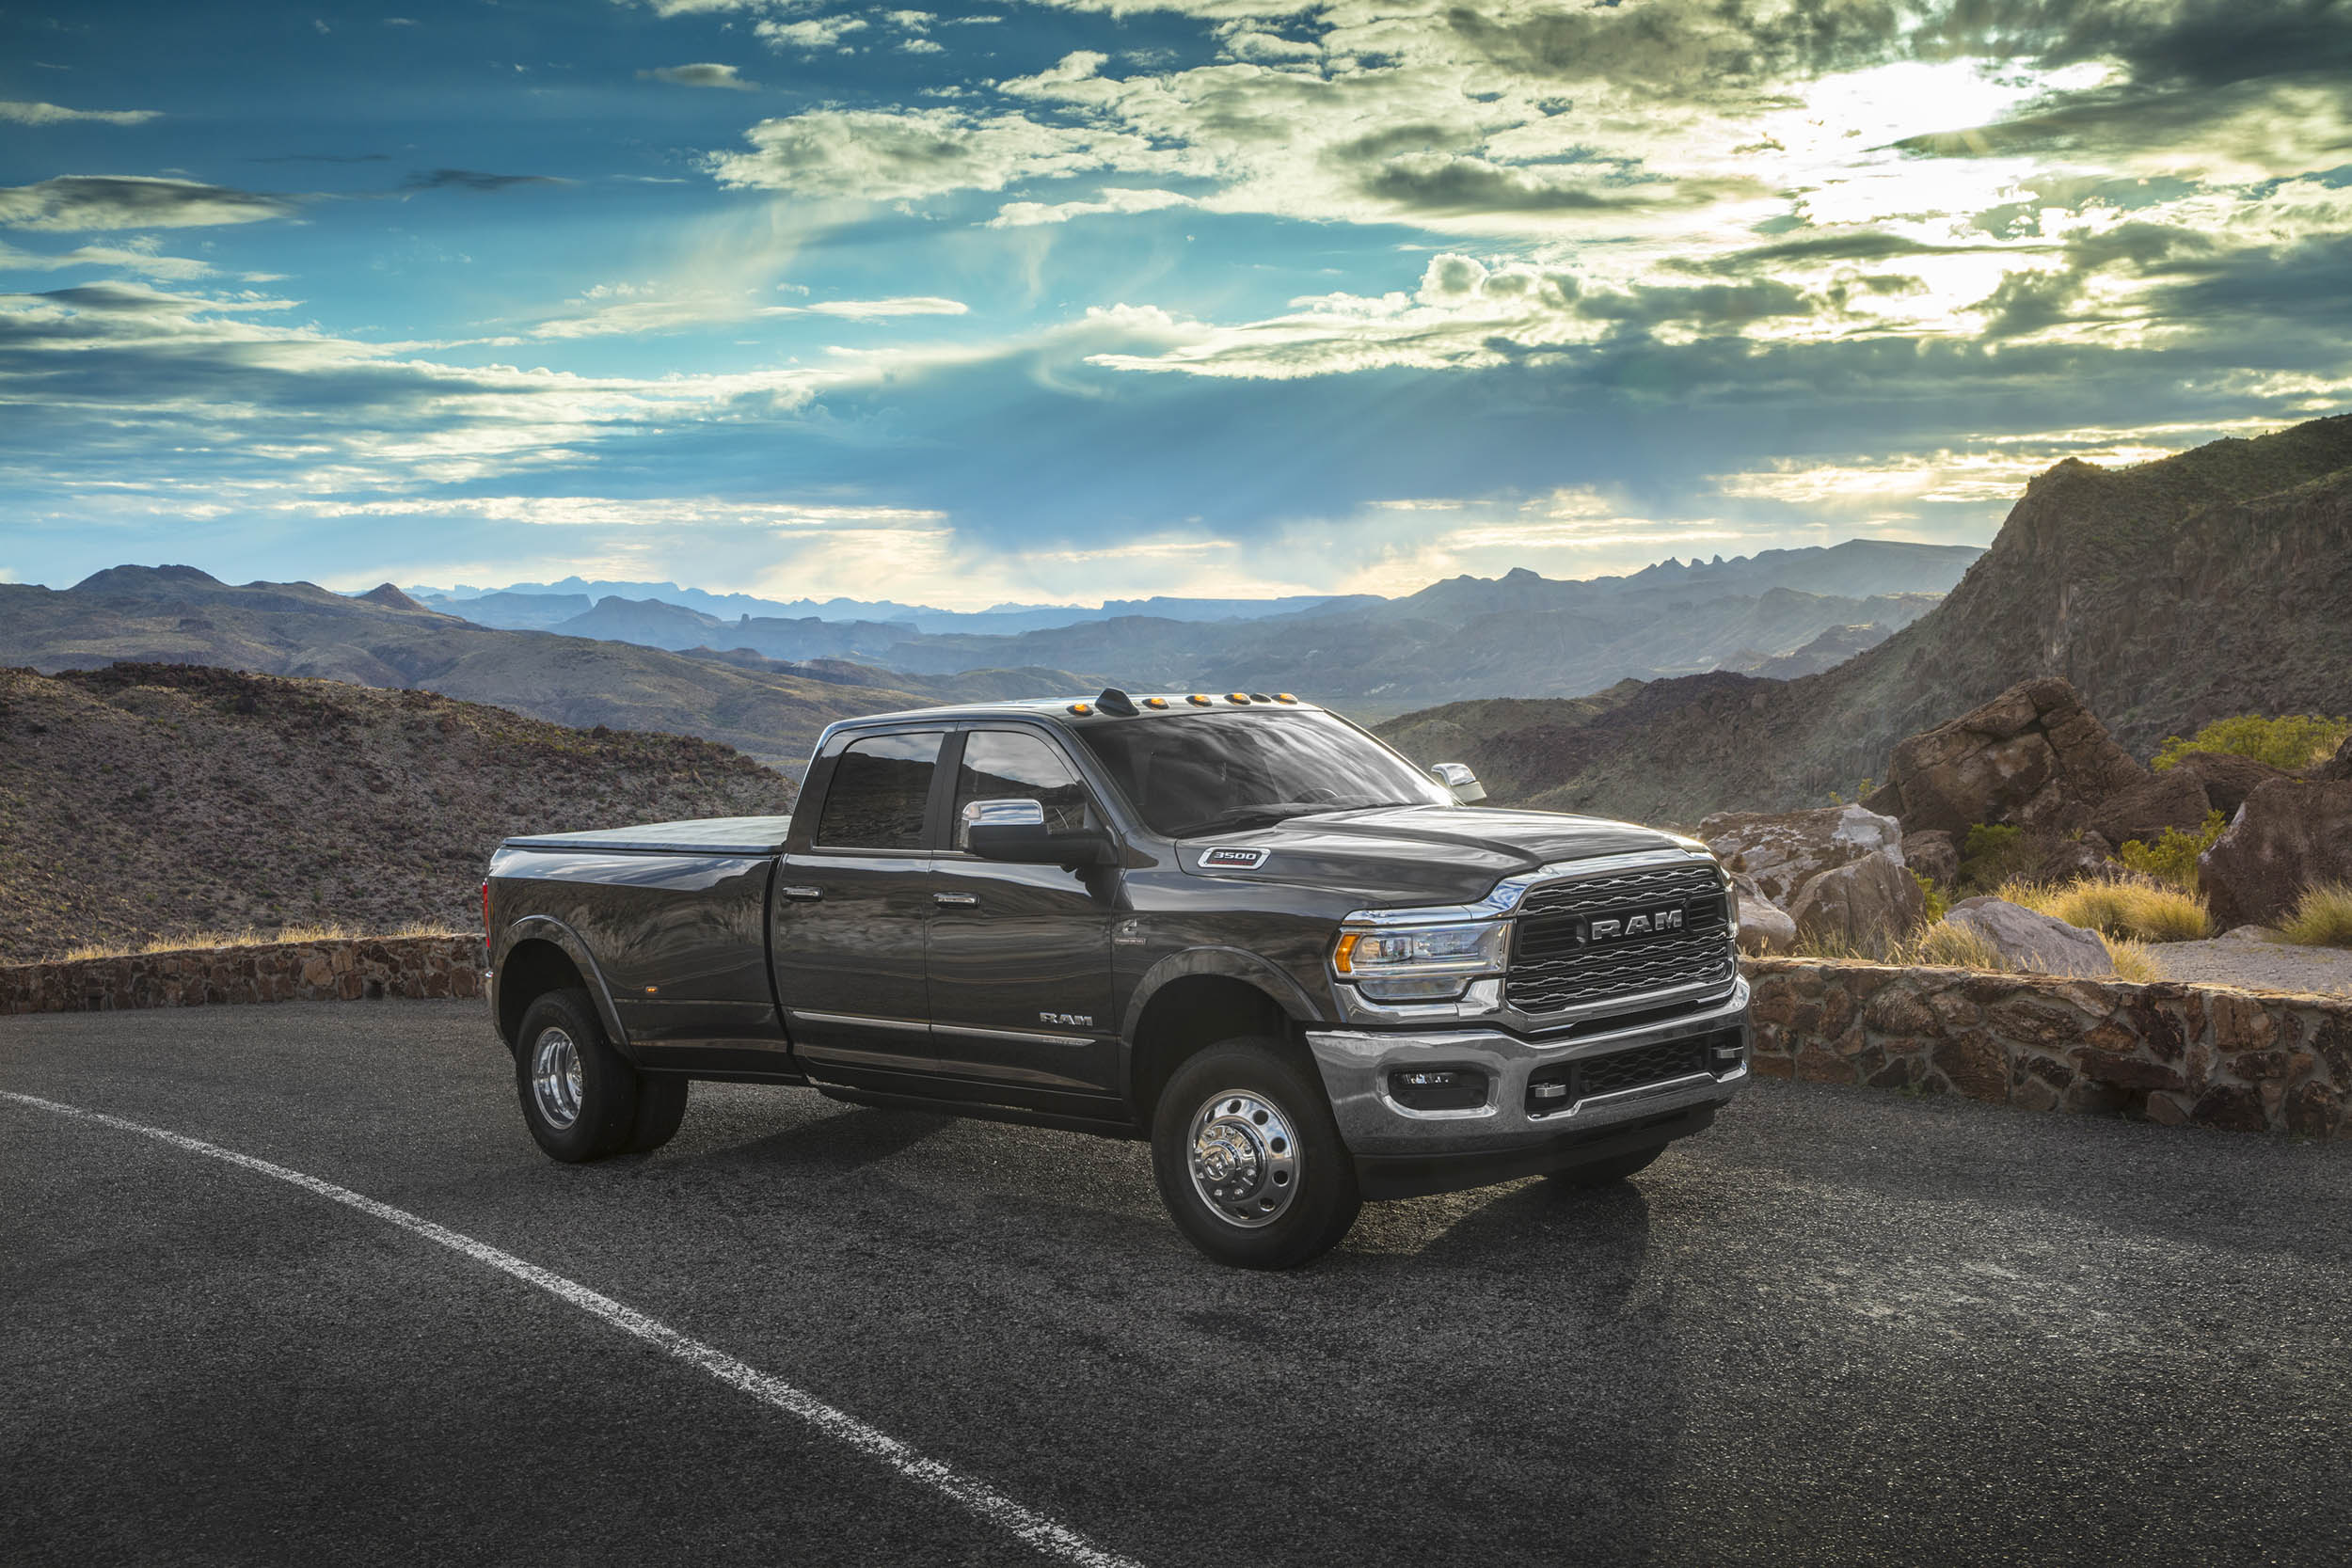 2019 RAM 3500 Dually front 3/4